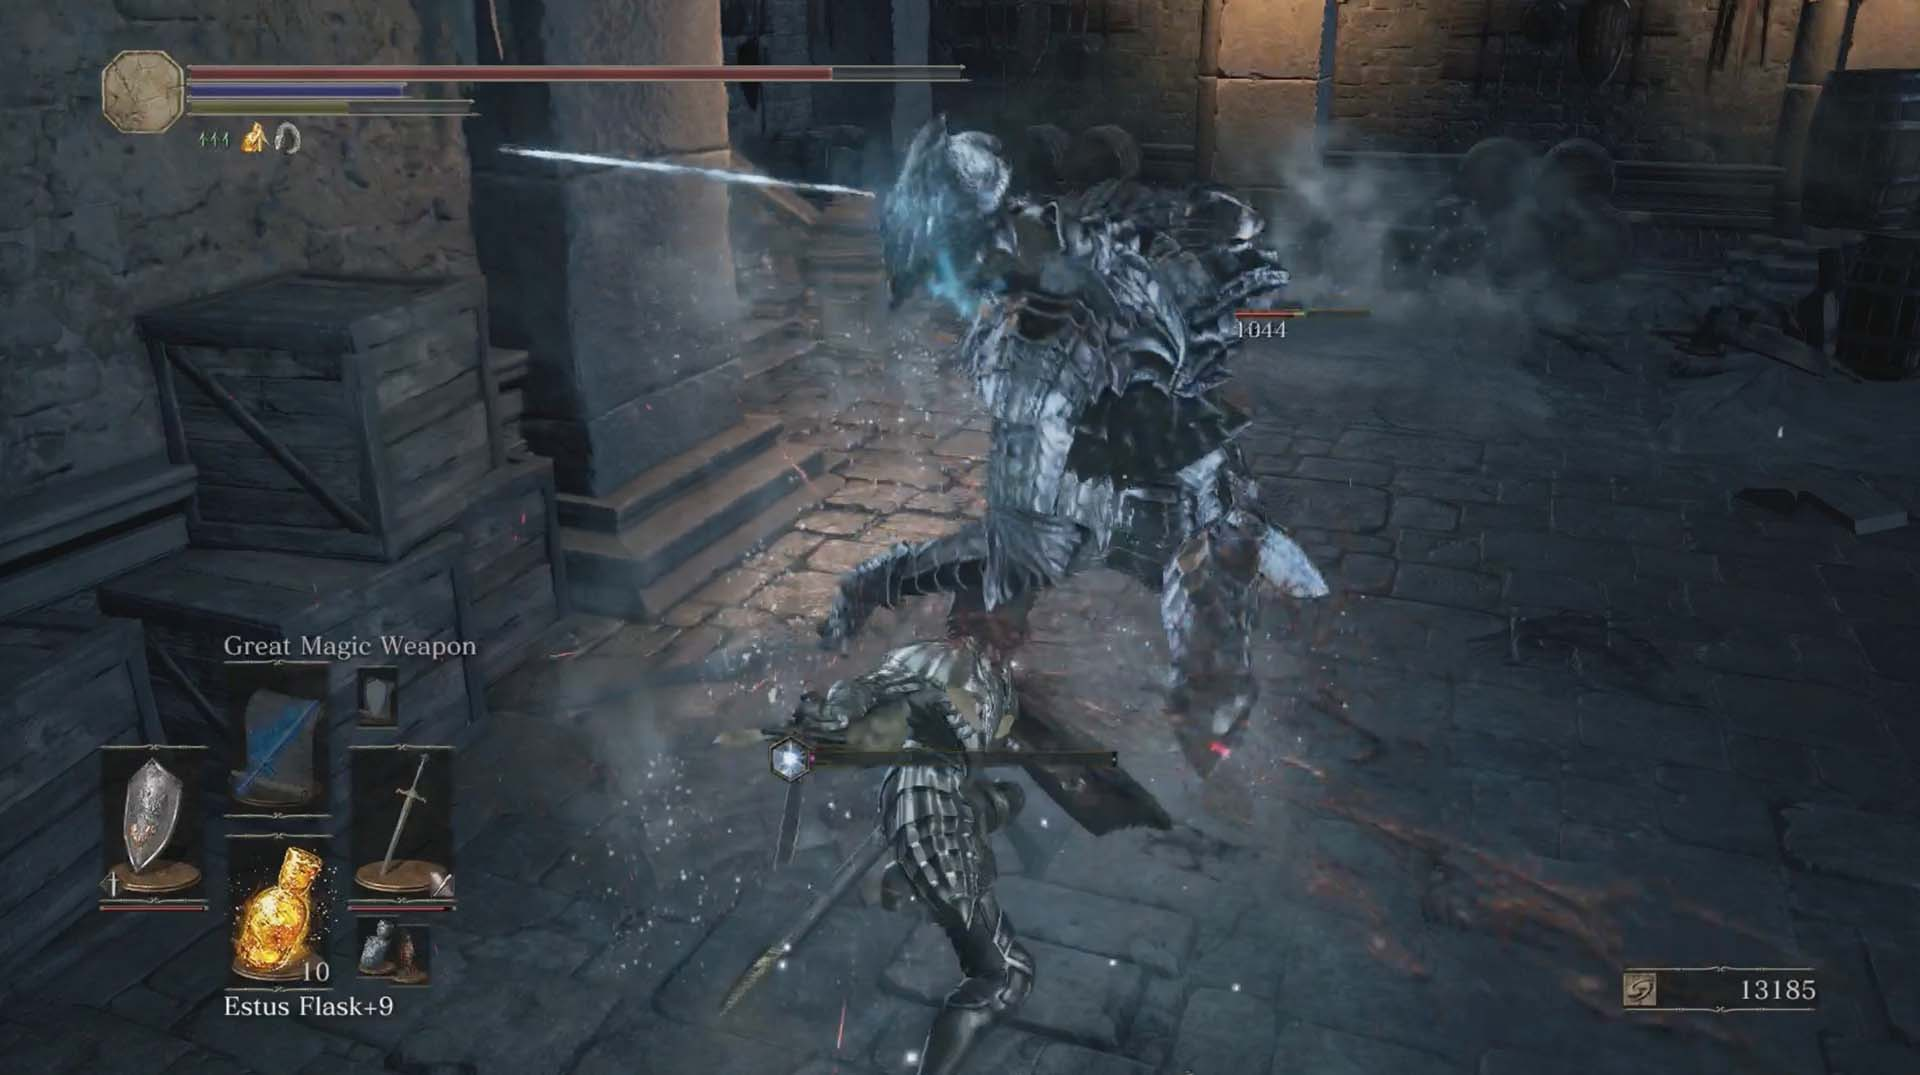 Dark souls 3 lothric castle walkthrough polygon the downward stairs to the right of the doorway you just passed through leads to a boreal outrider knight it moves on fours like vordt of the boreal valley biocorpaavc Gallery